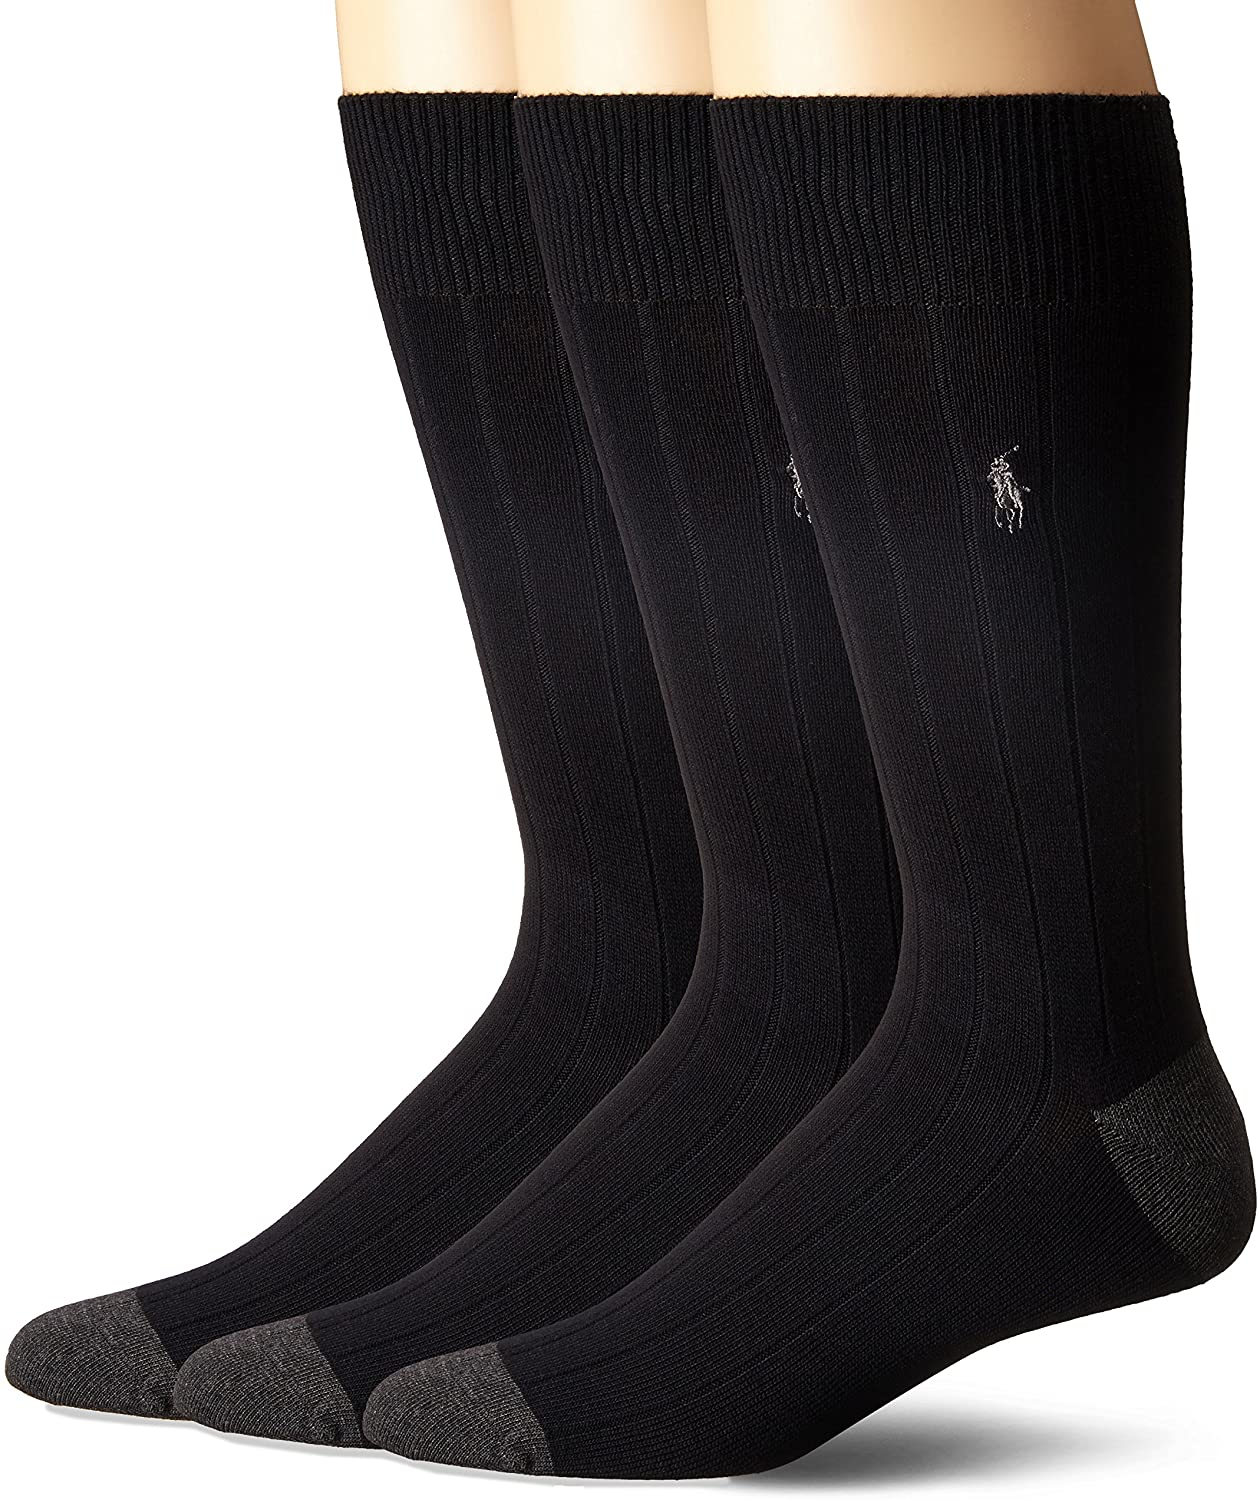 Polo Ralph Lauren 3-Pack Rib Crew with Contrast Heel/Toe and Polo Player Embroidery